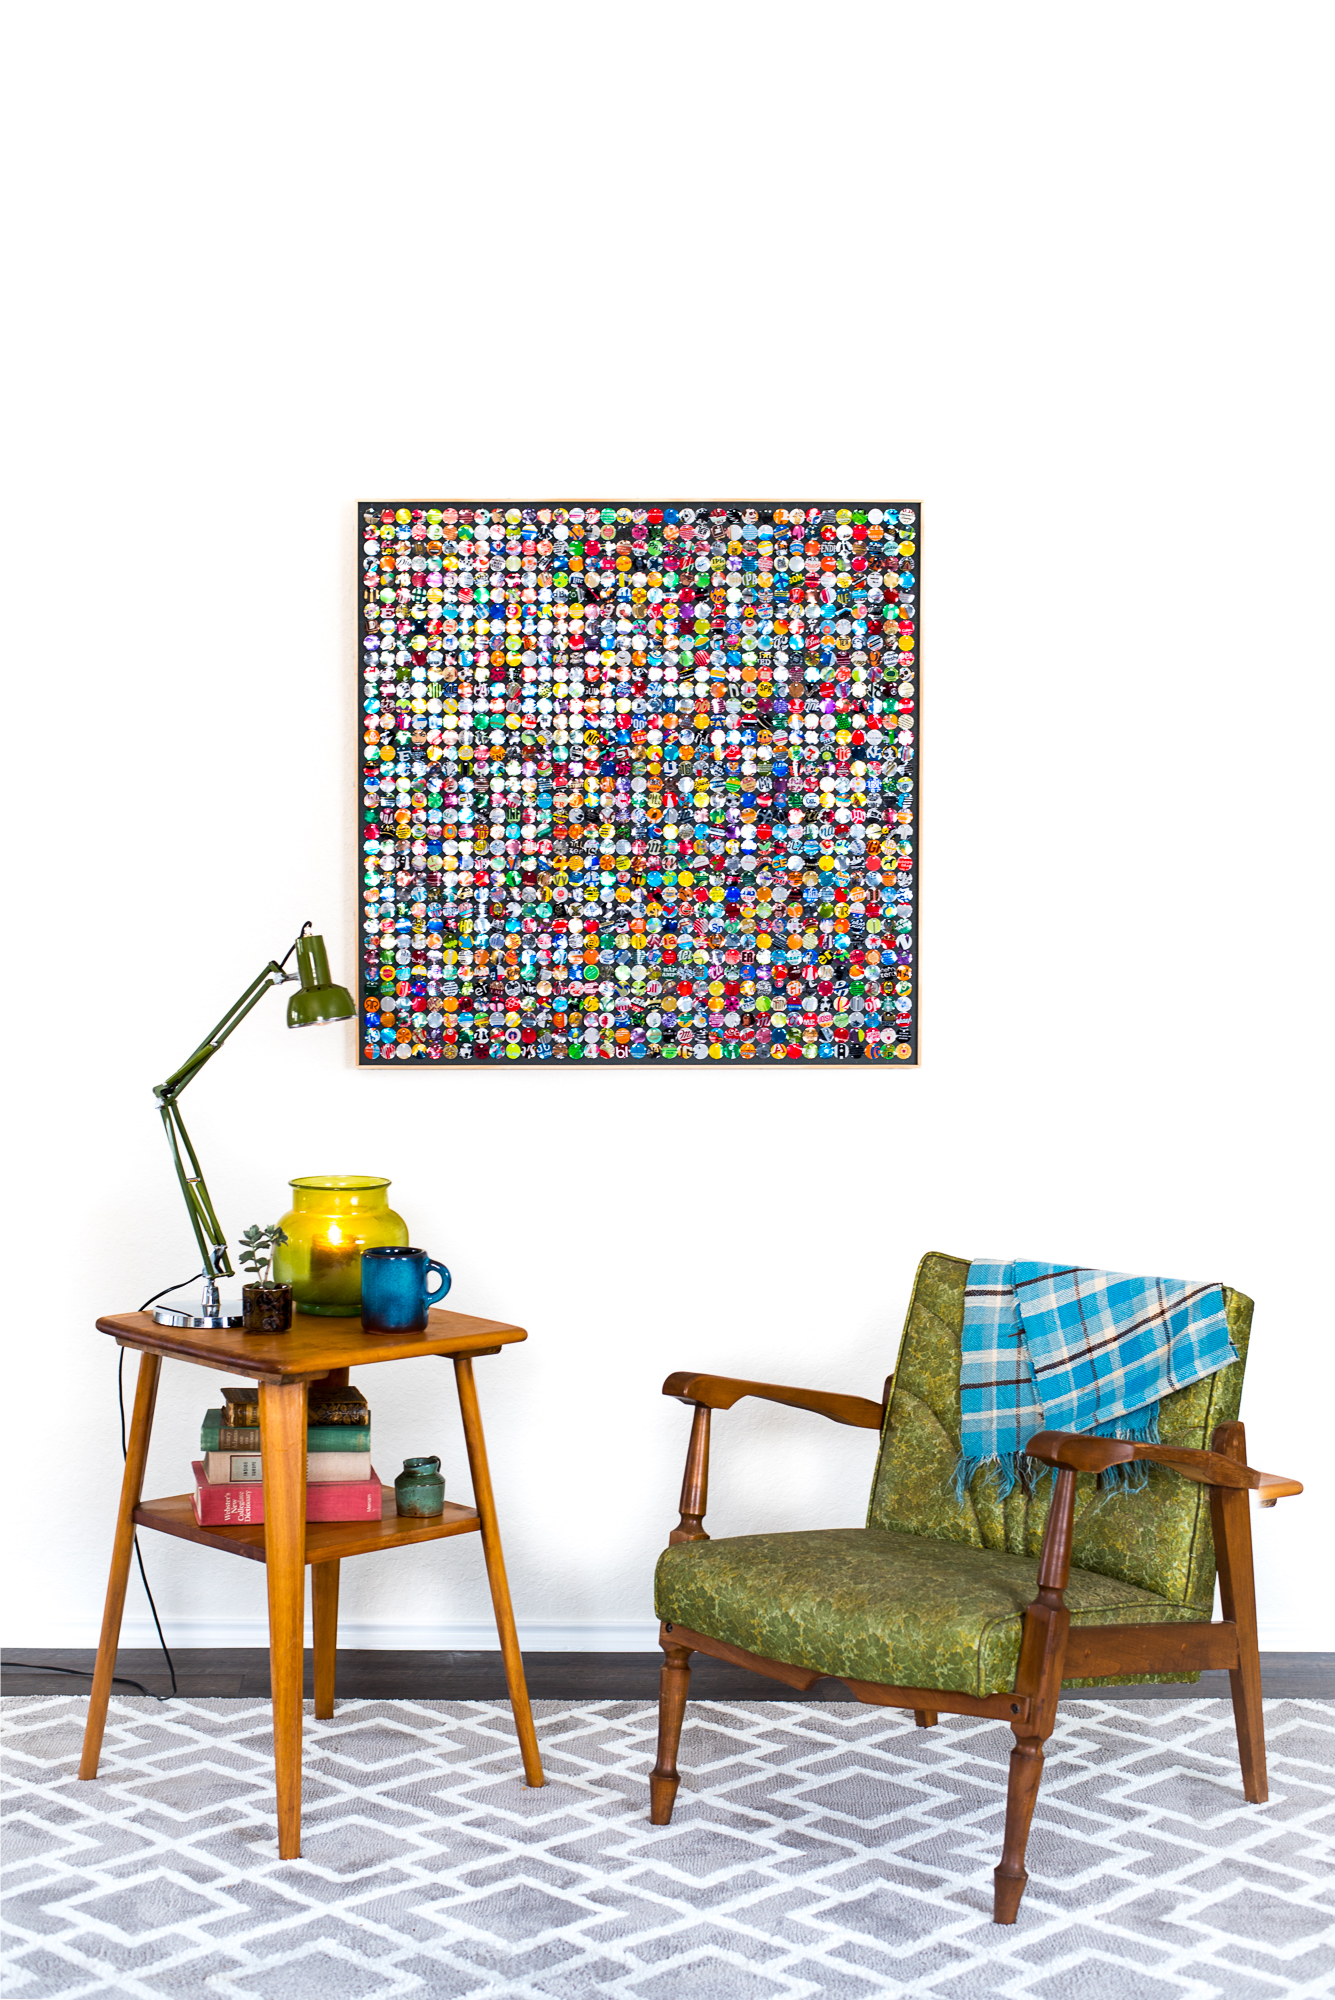 hannah-nemo-beer-can-recycled-moving-mosaic-chairs-table-lamp-single-36x36.jpg